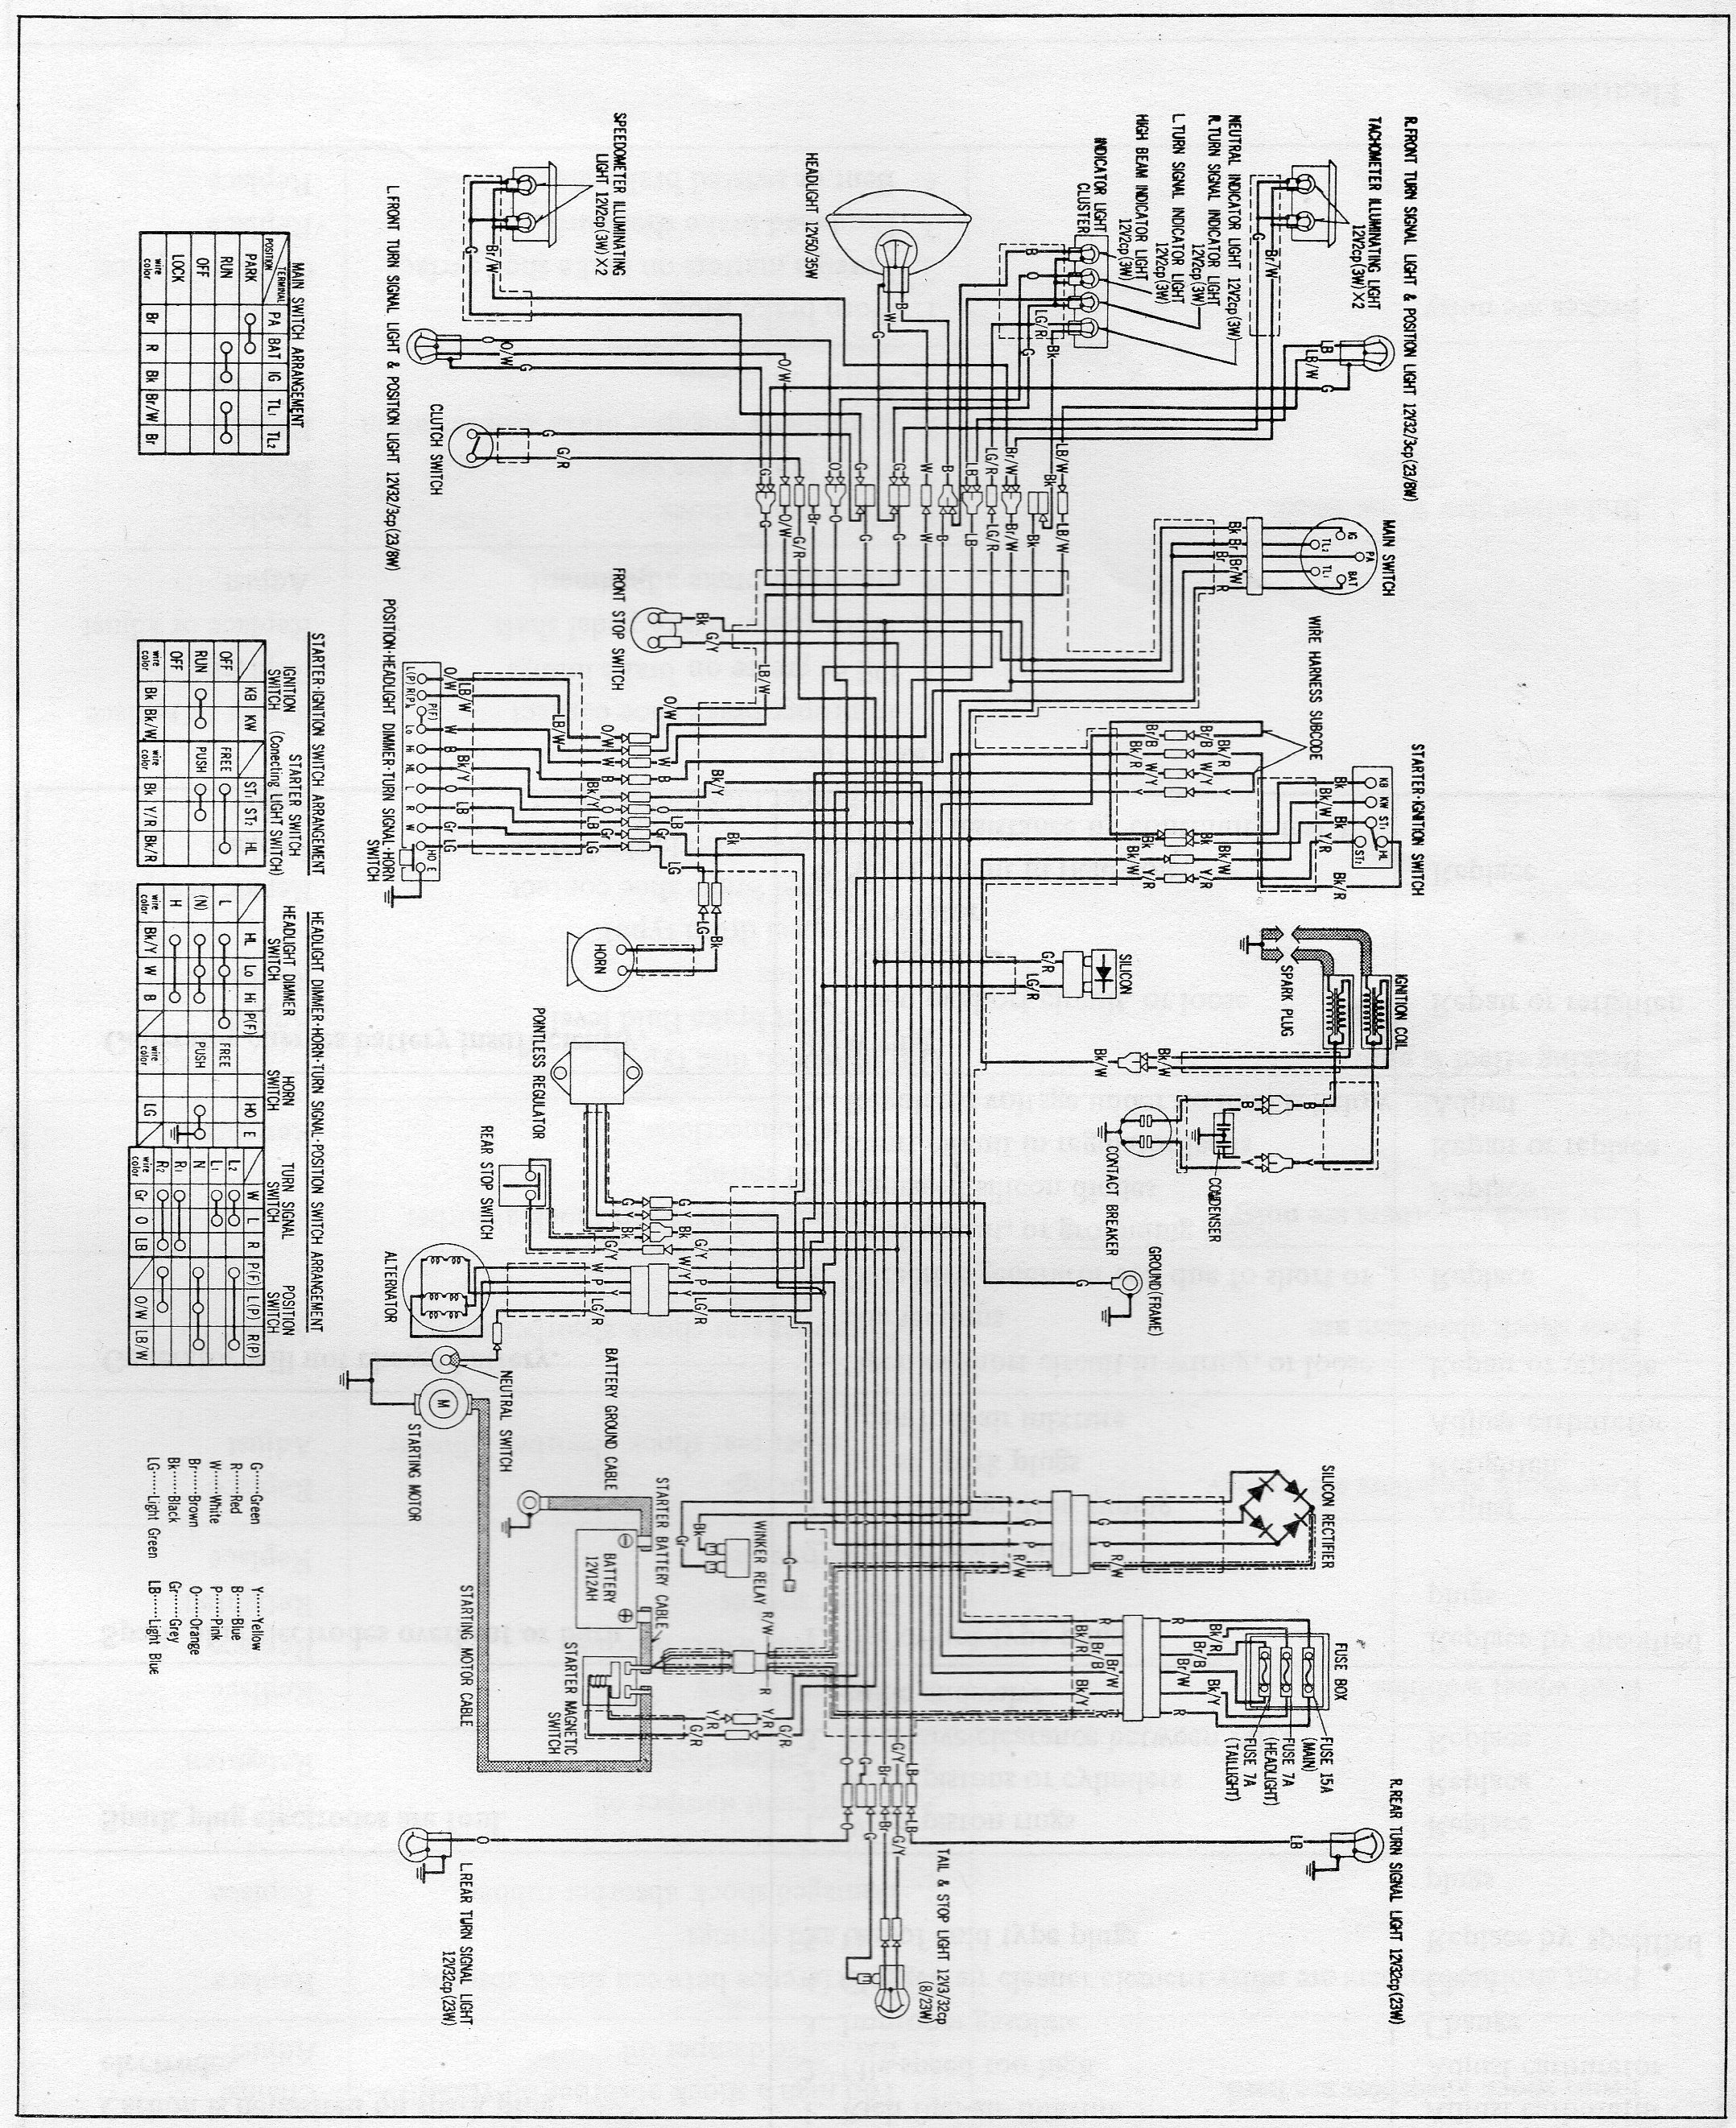 Technical Diagrams Wiring Diagram